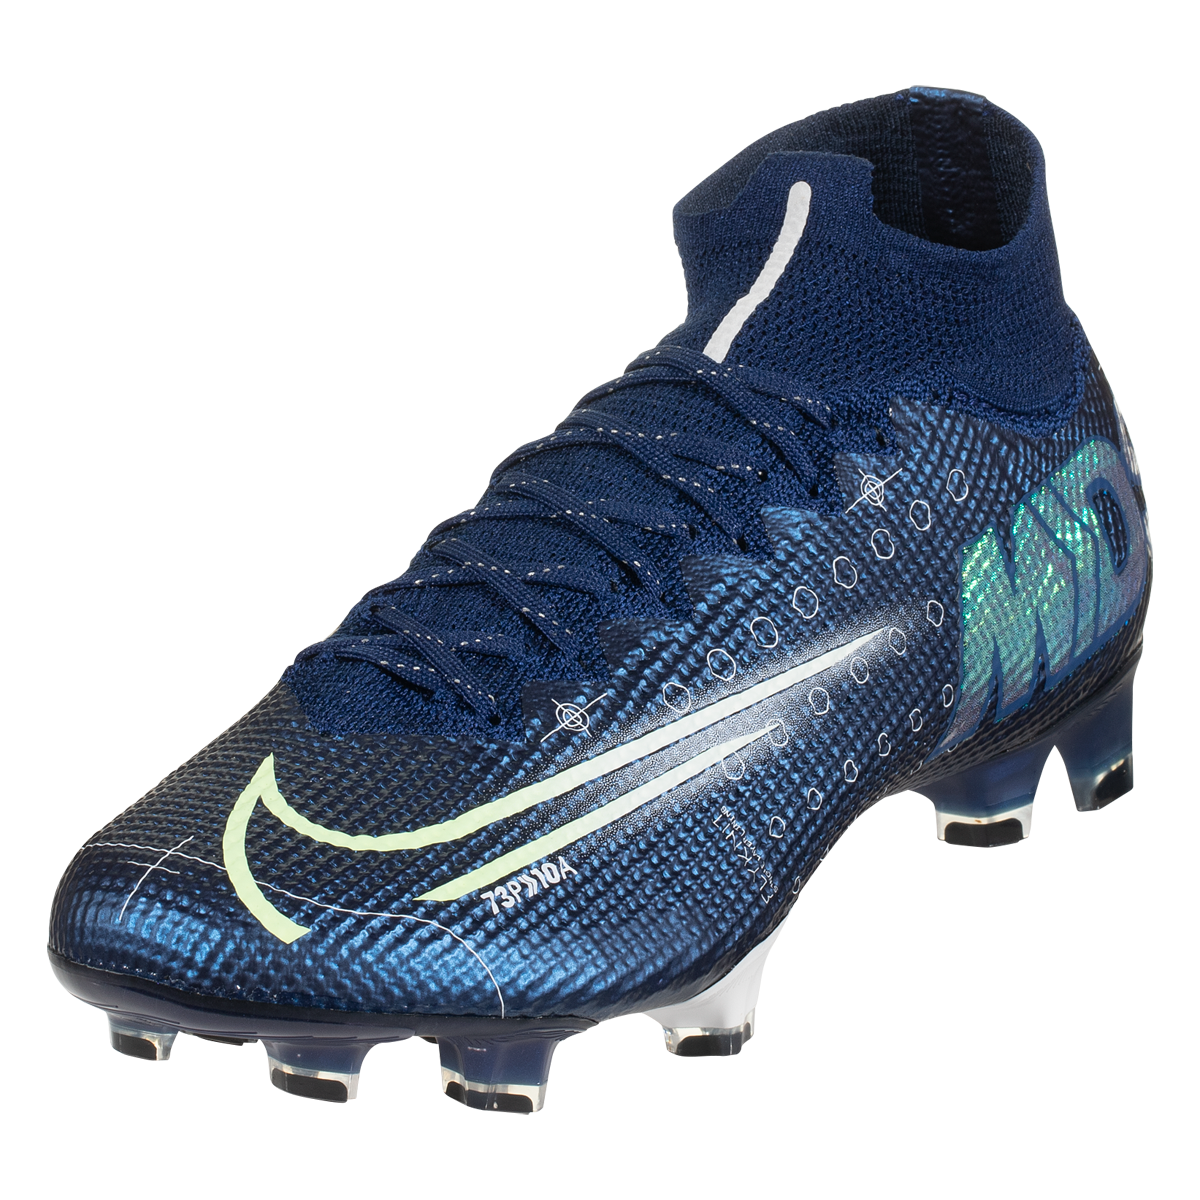 Nike Mercurial Superfly 7 Elite Fg Soccer Cleat Blue Void Metallic Silver White Black 8 Superfly Cleats Cleats Soccer Cleats